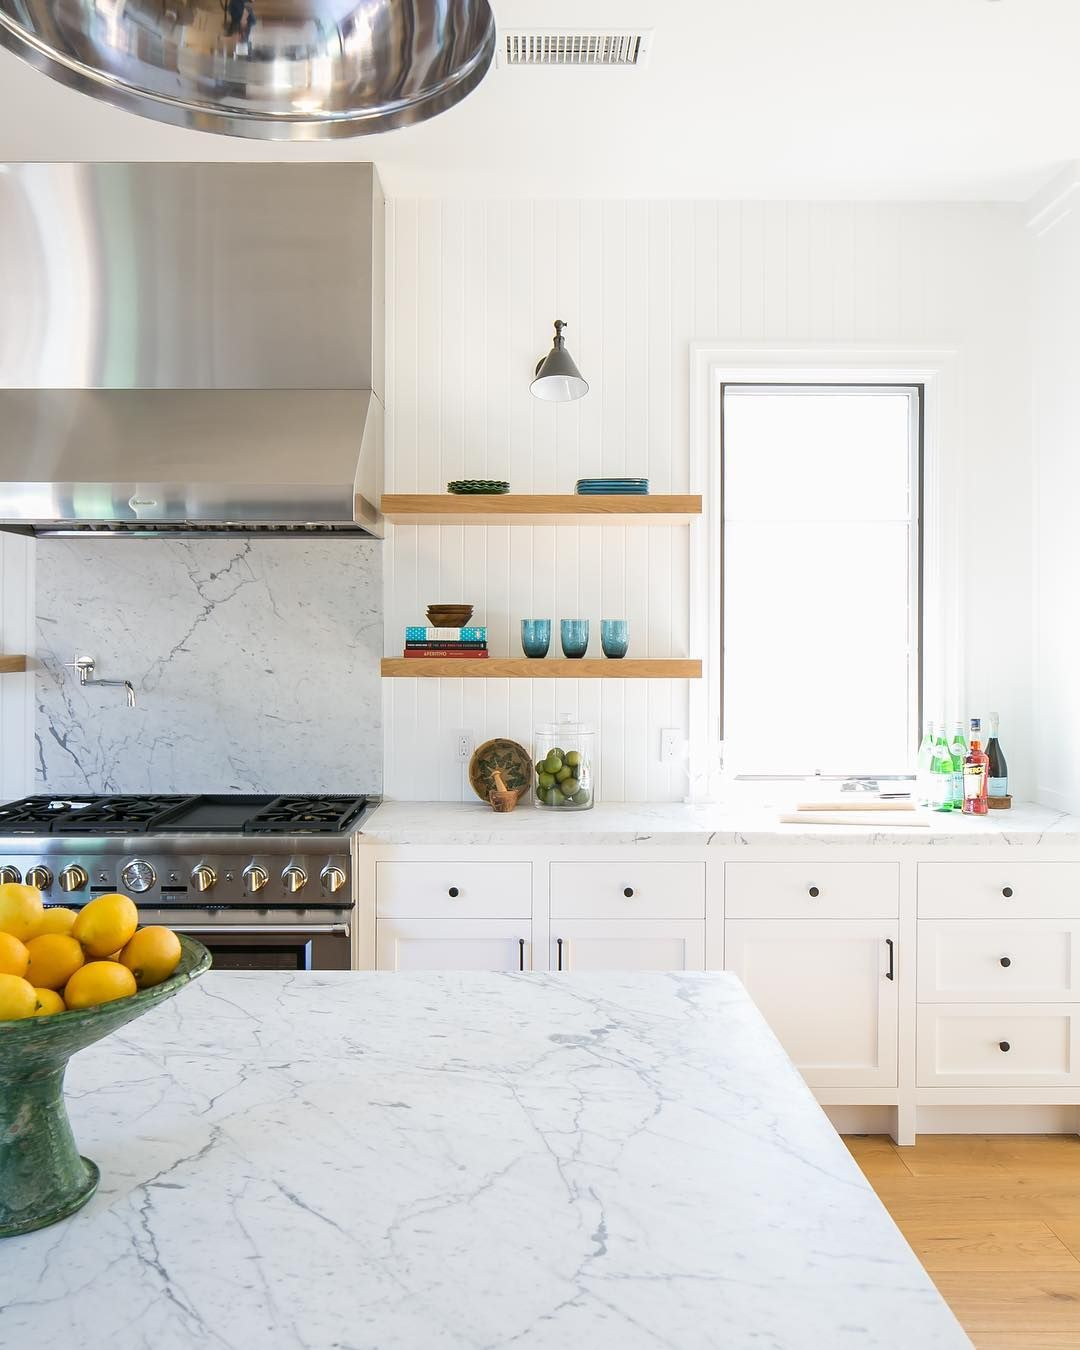 How To Refinish Kitchen And Bathroom Countertops Countertop